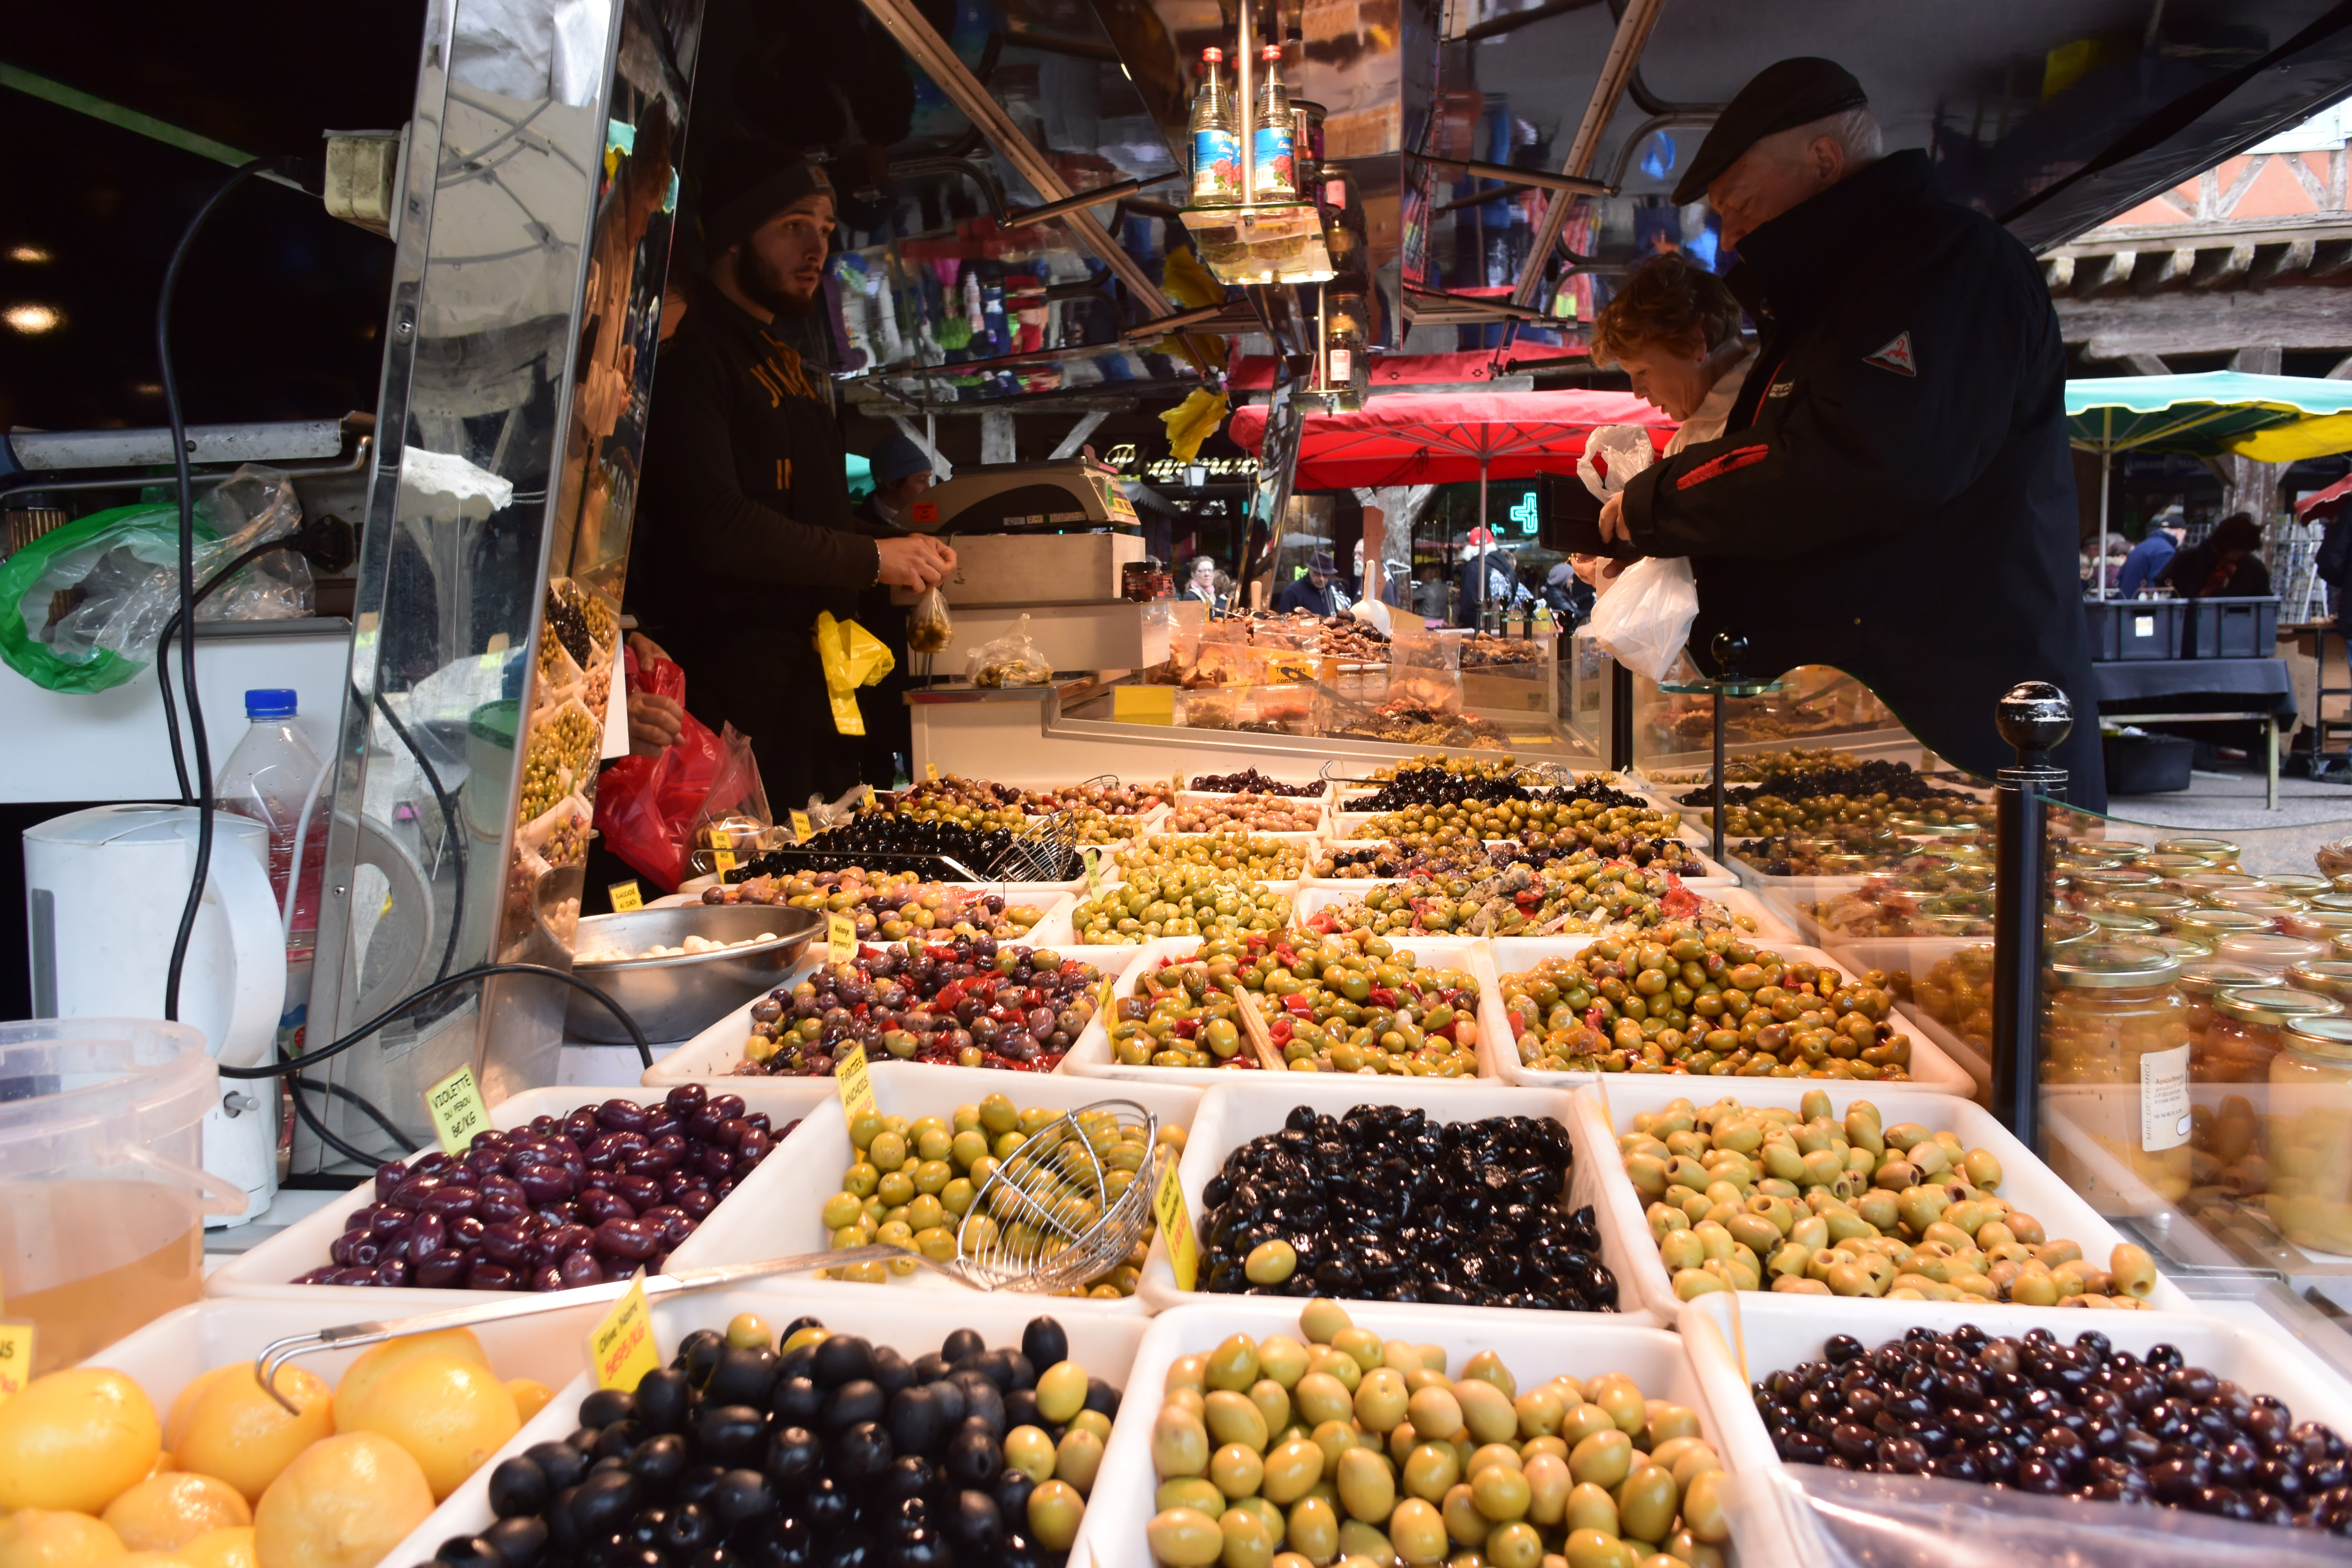 Olive Stand at market